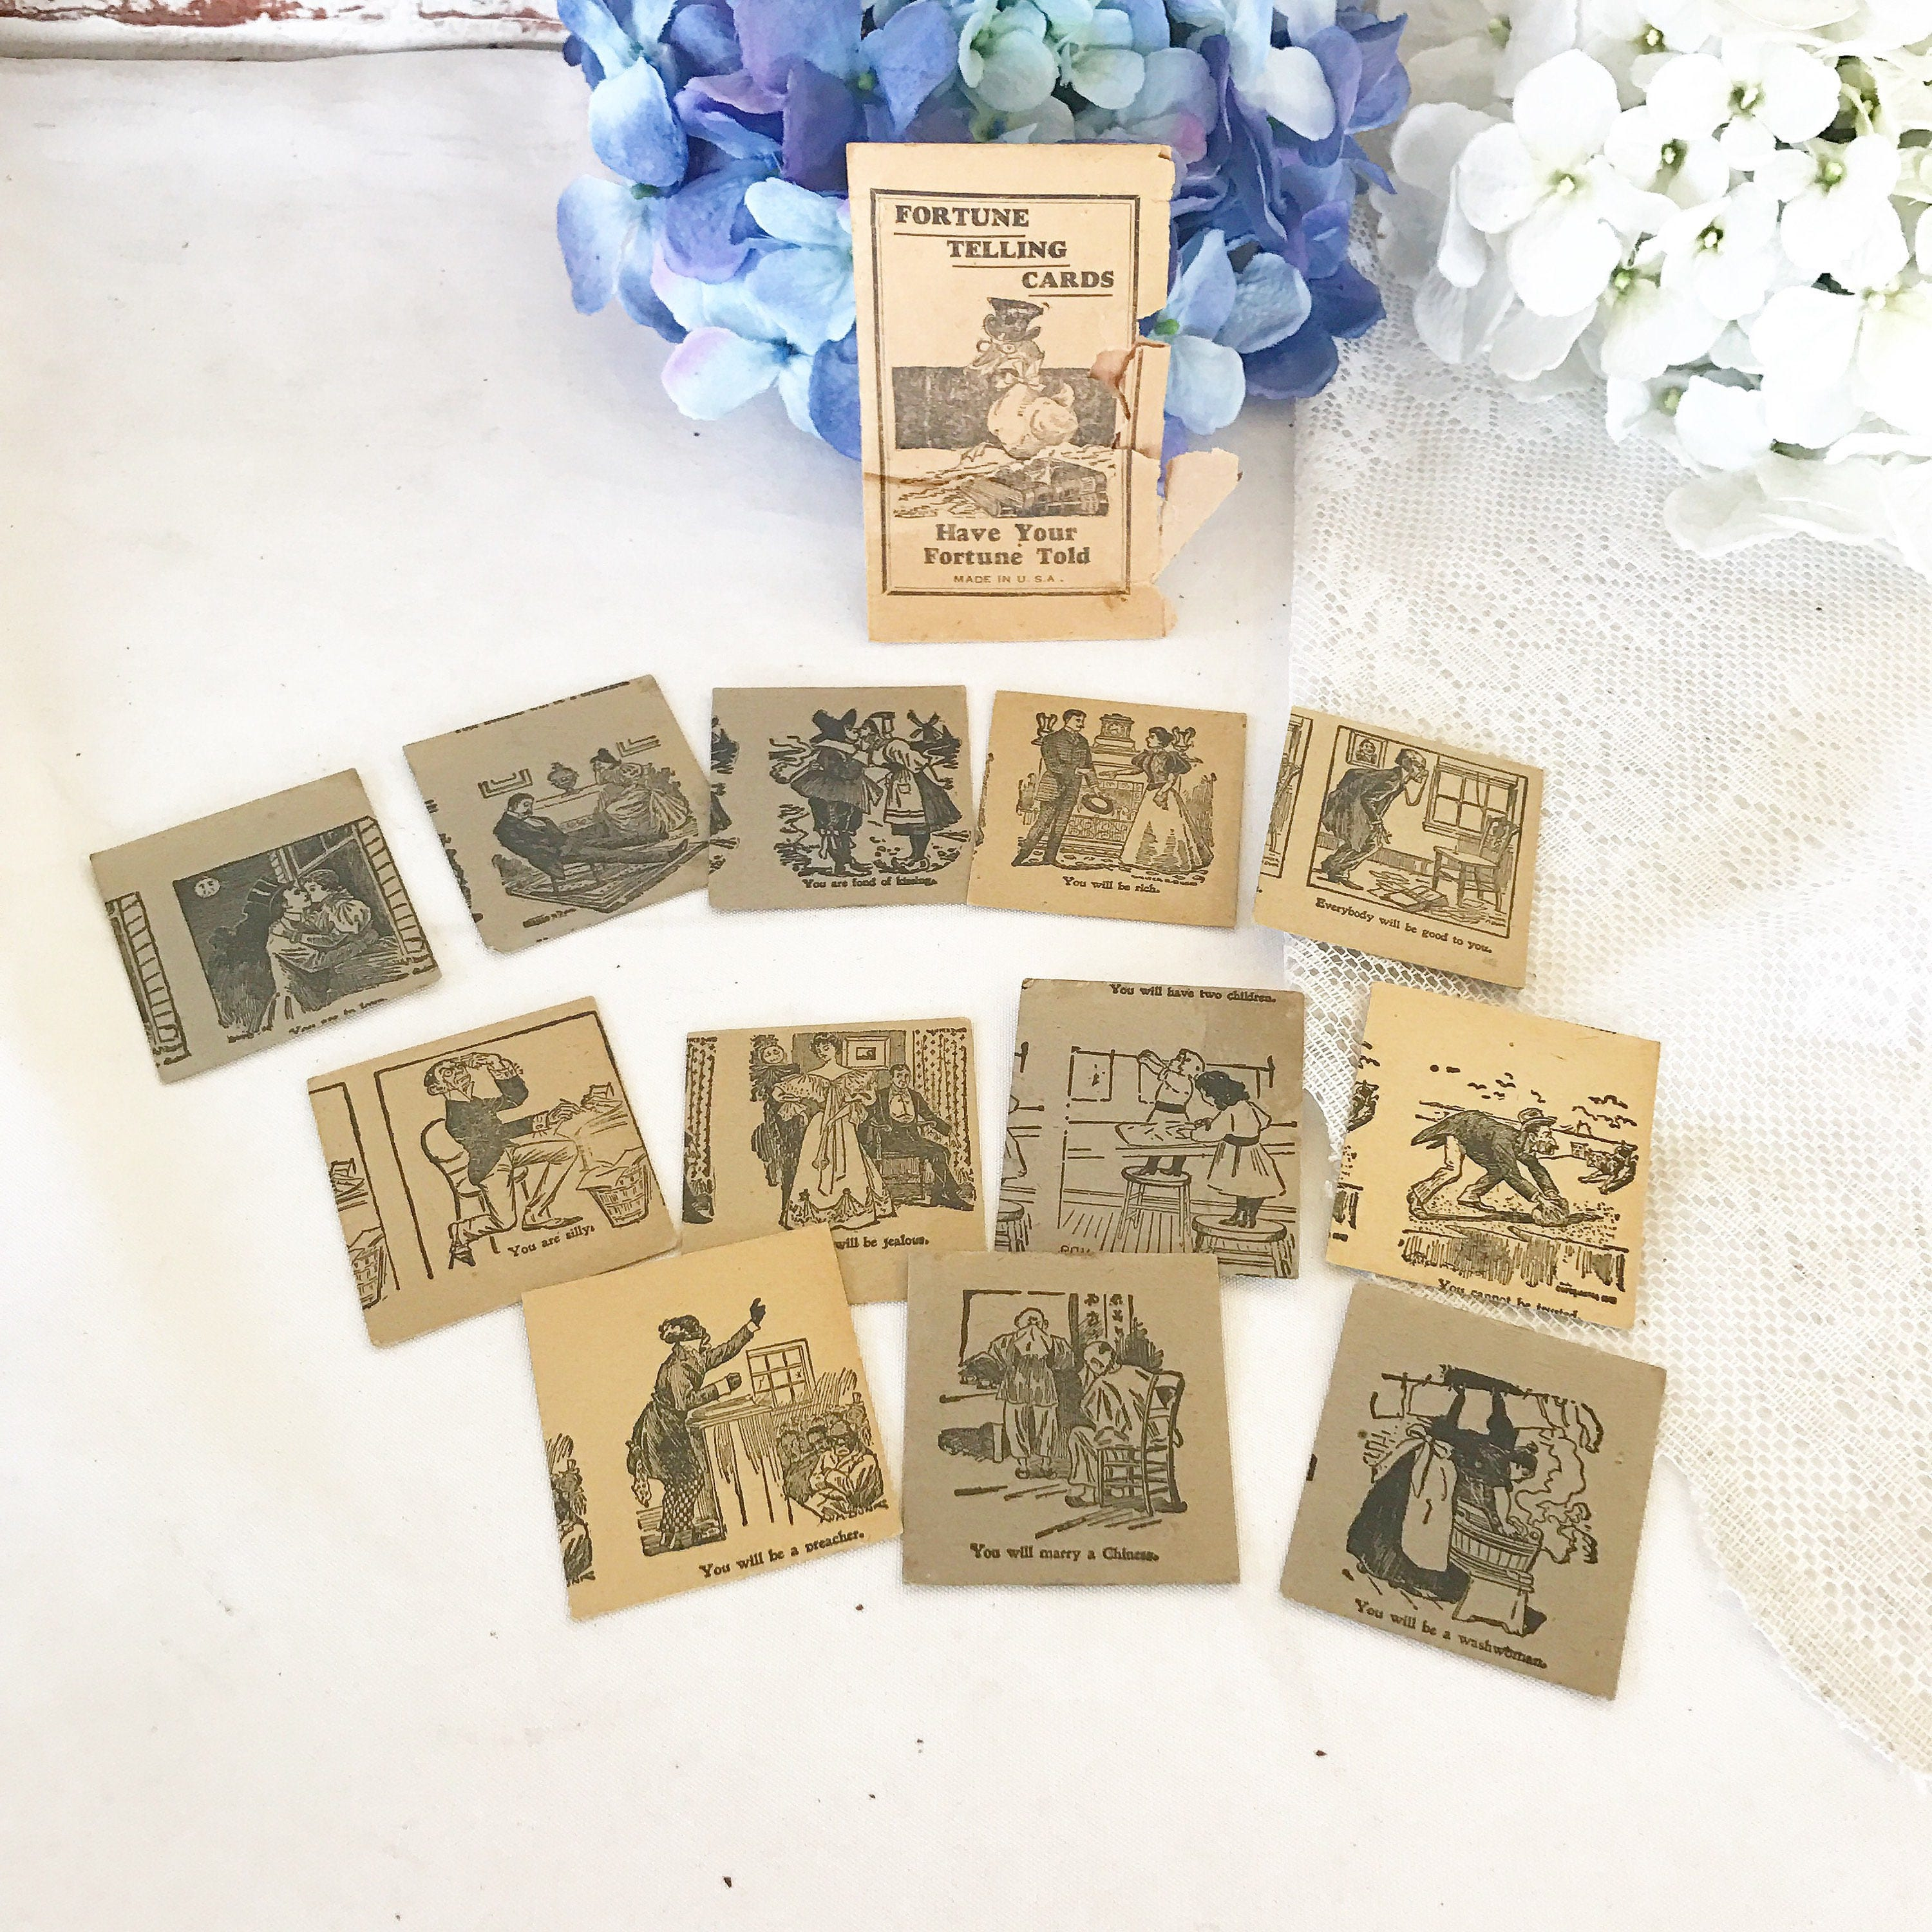 Antique Fortune Telling Tarot Cards Deck Vintage Have Your